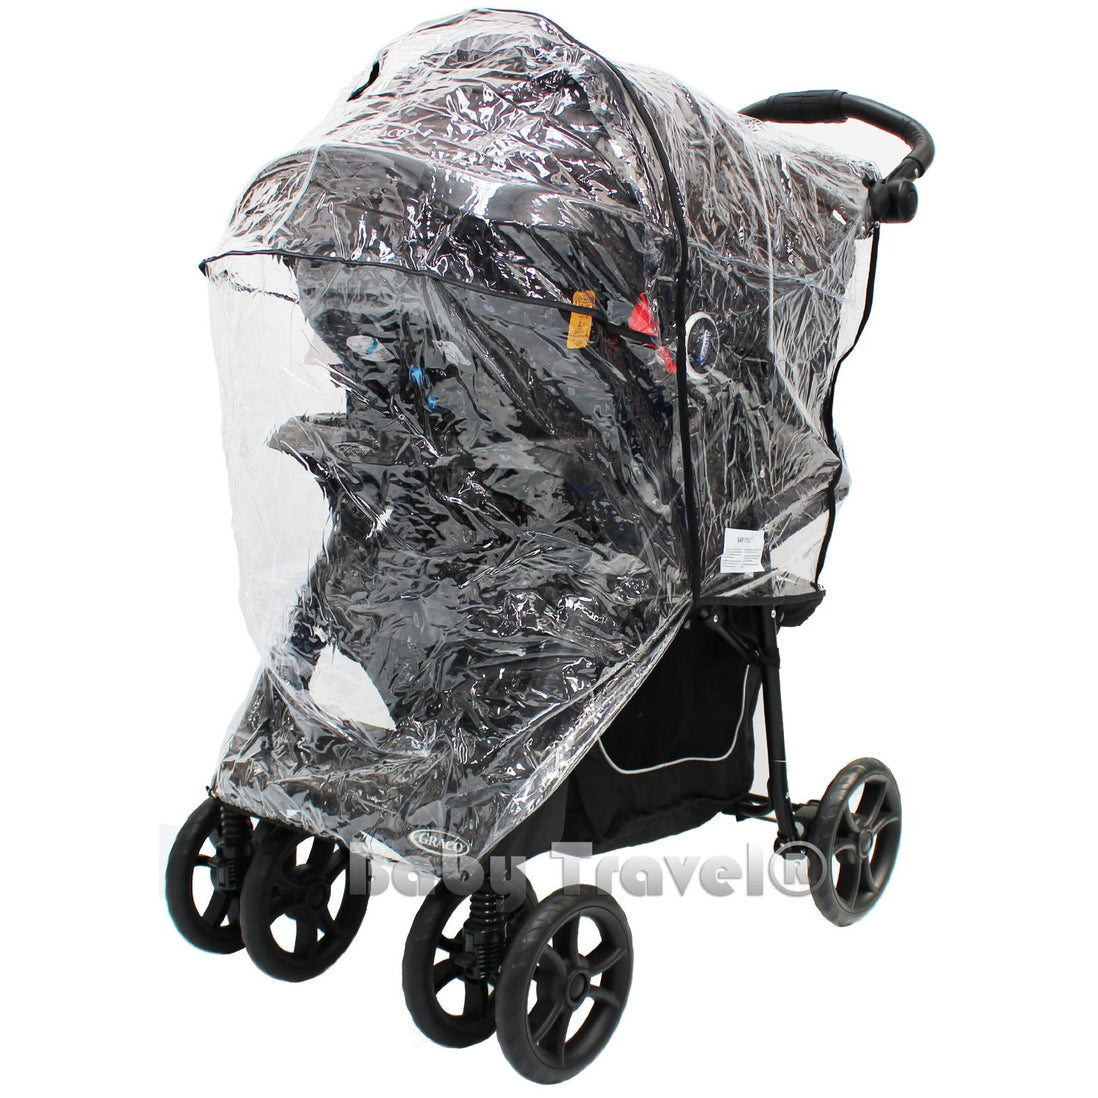 Baby Travel Universal Rain 3 Wheeler Rain Cover to Fit Hauck Rapid 3 Stroller